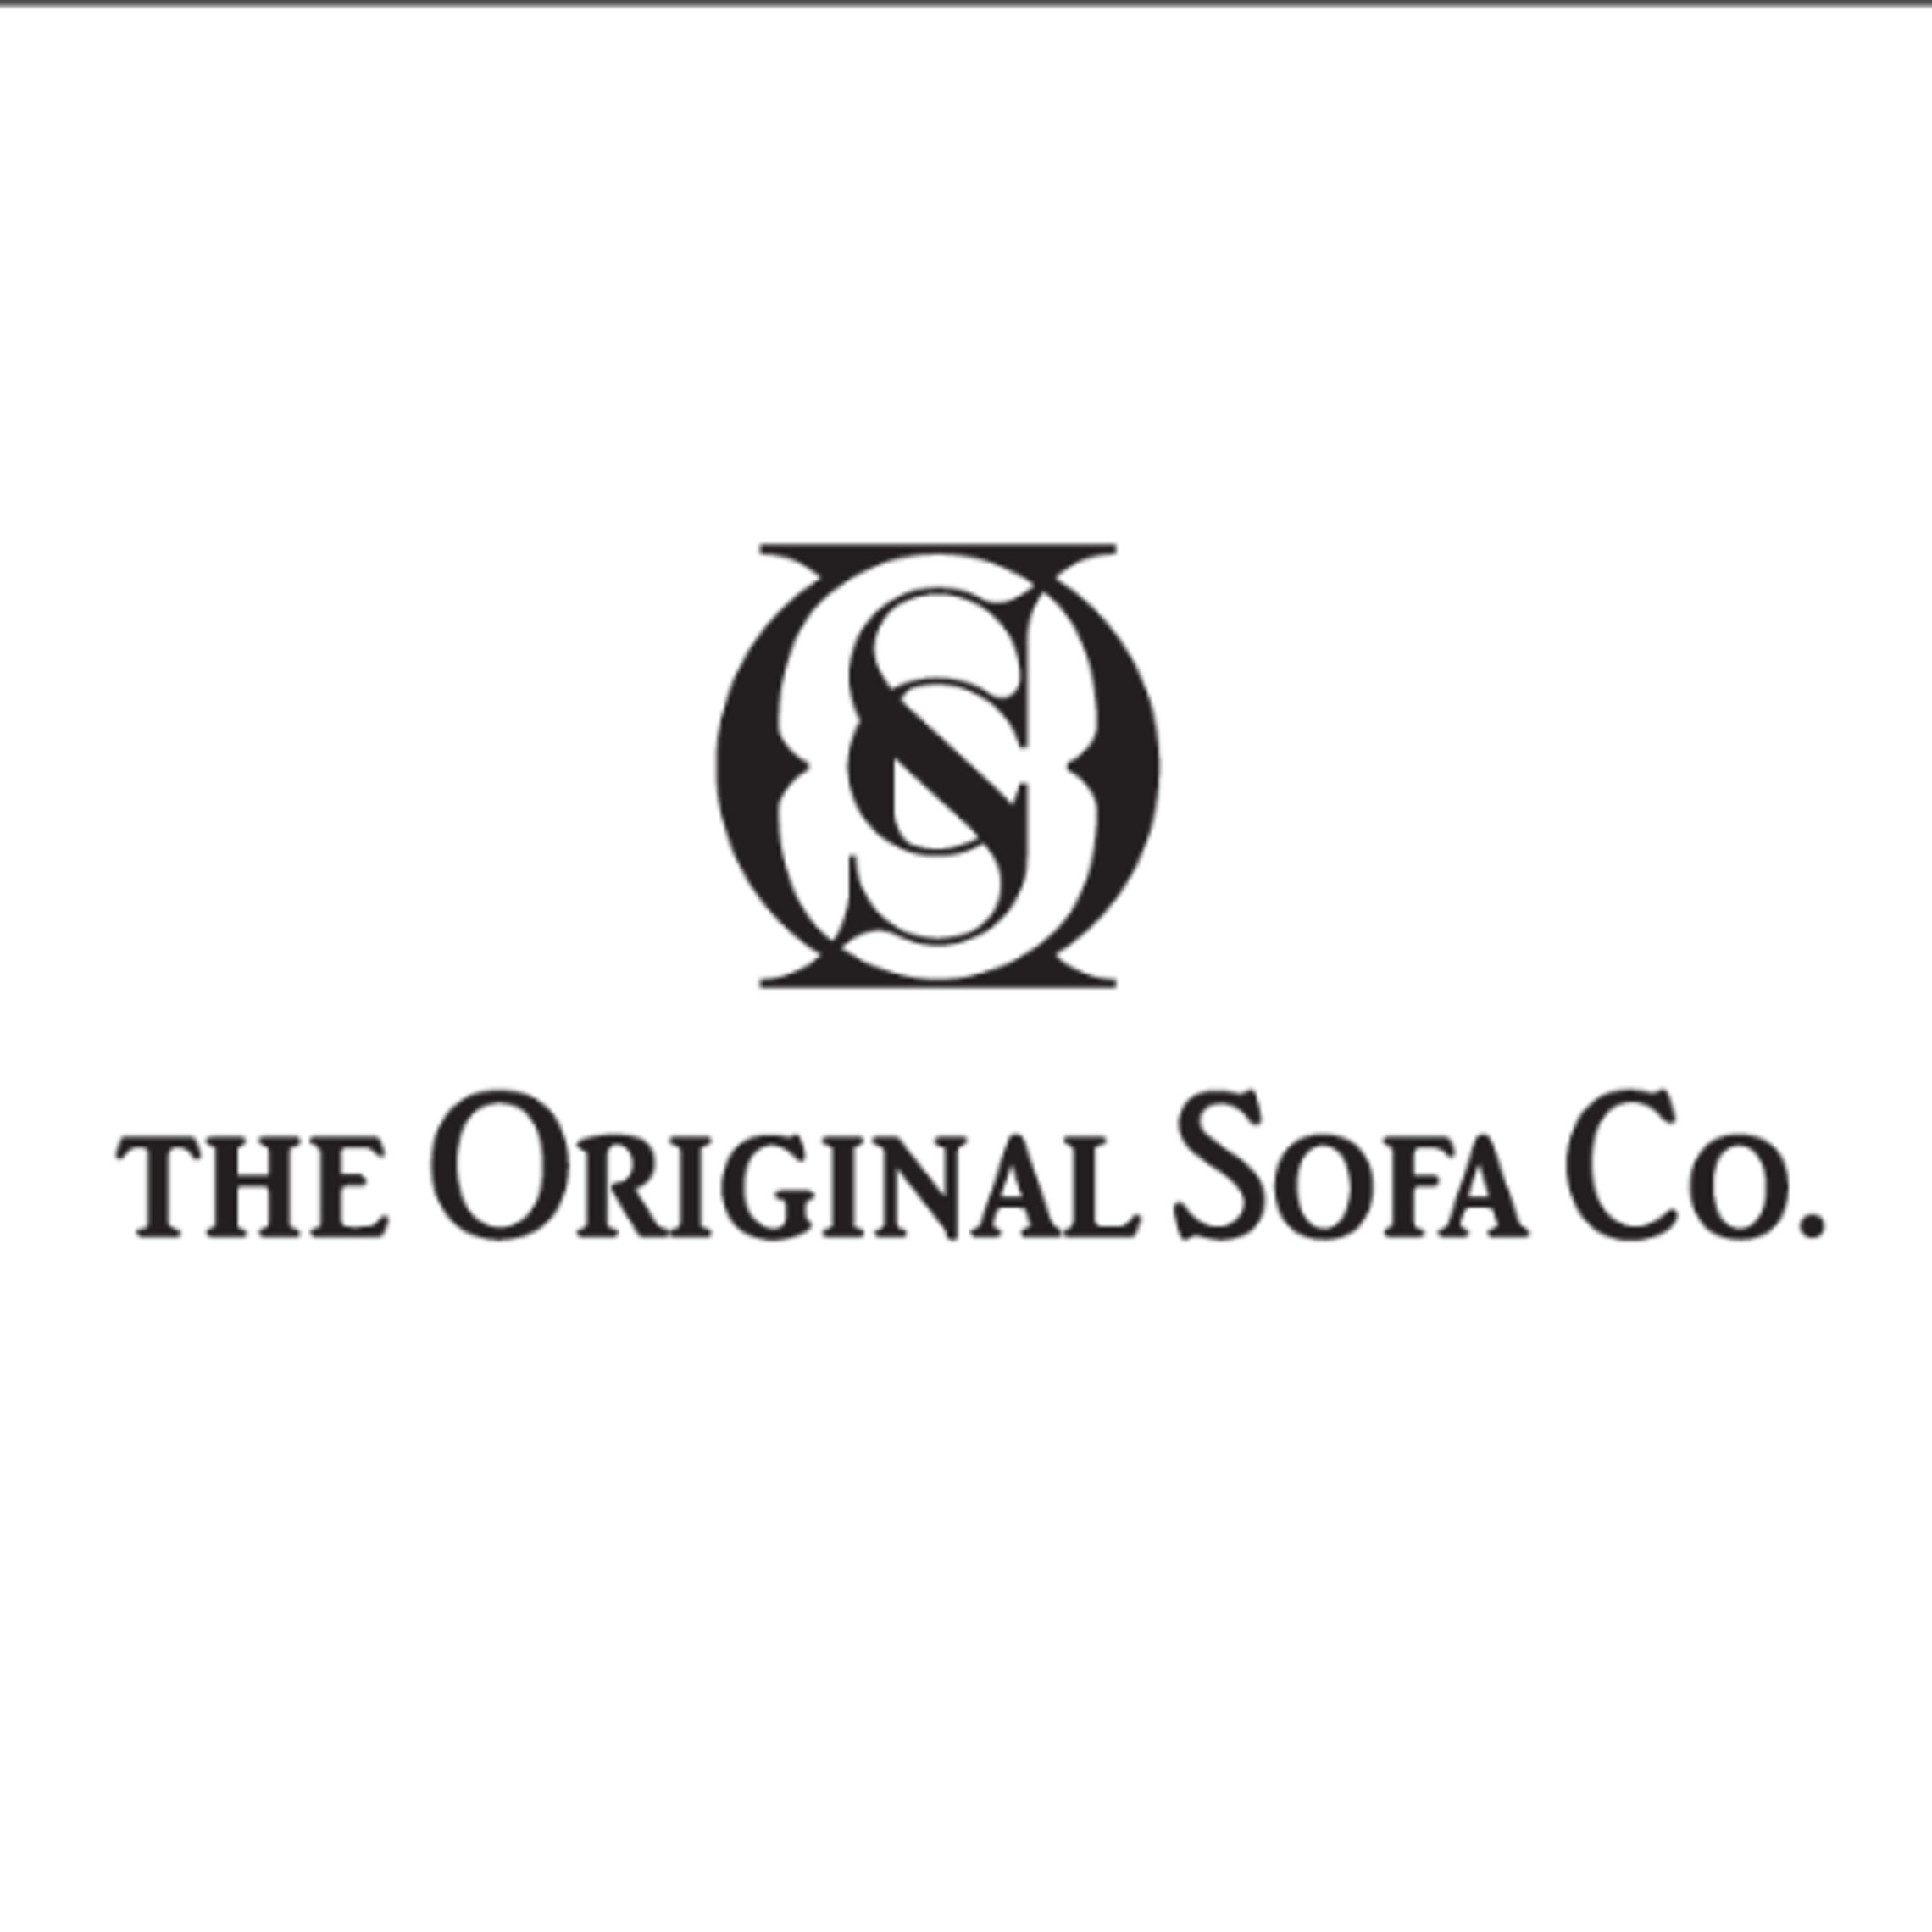 the original sofa- company logo